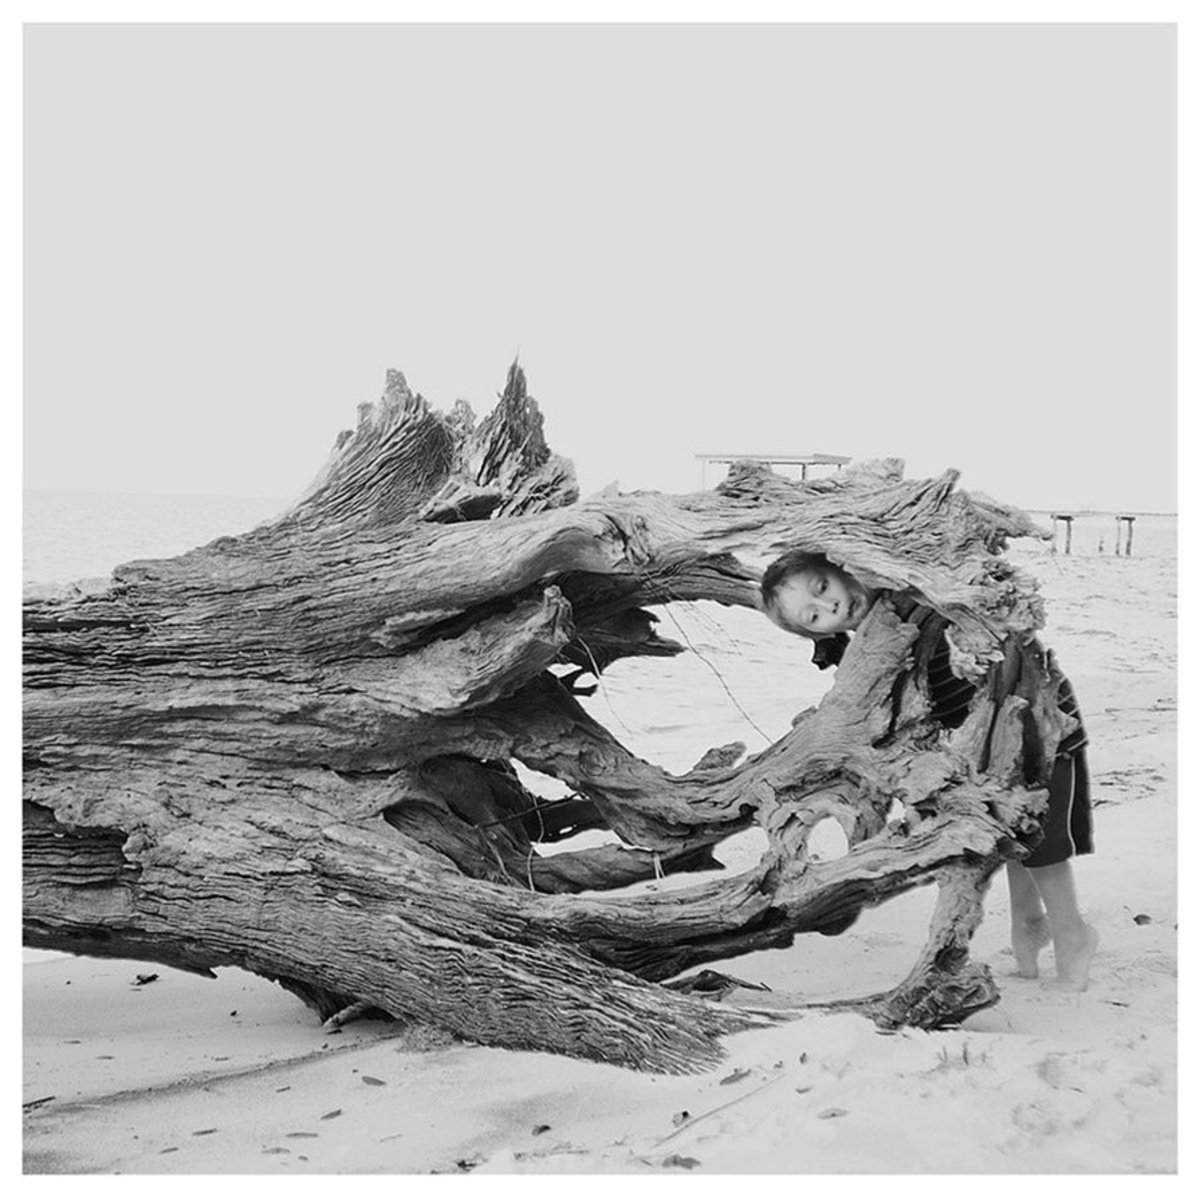 """""""Gulp."""" My son exploring driftwood on a beach at Fort Morgan. His animated exploration was delightful subject matter!"""